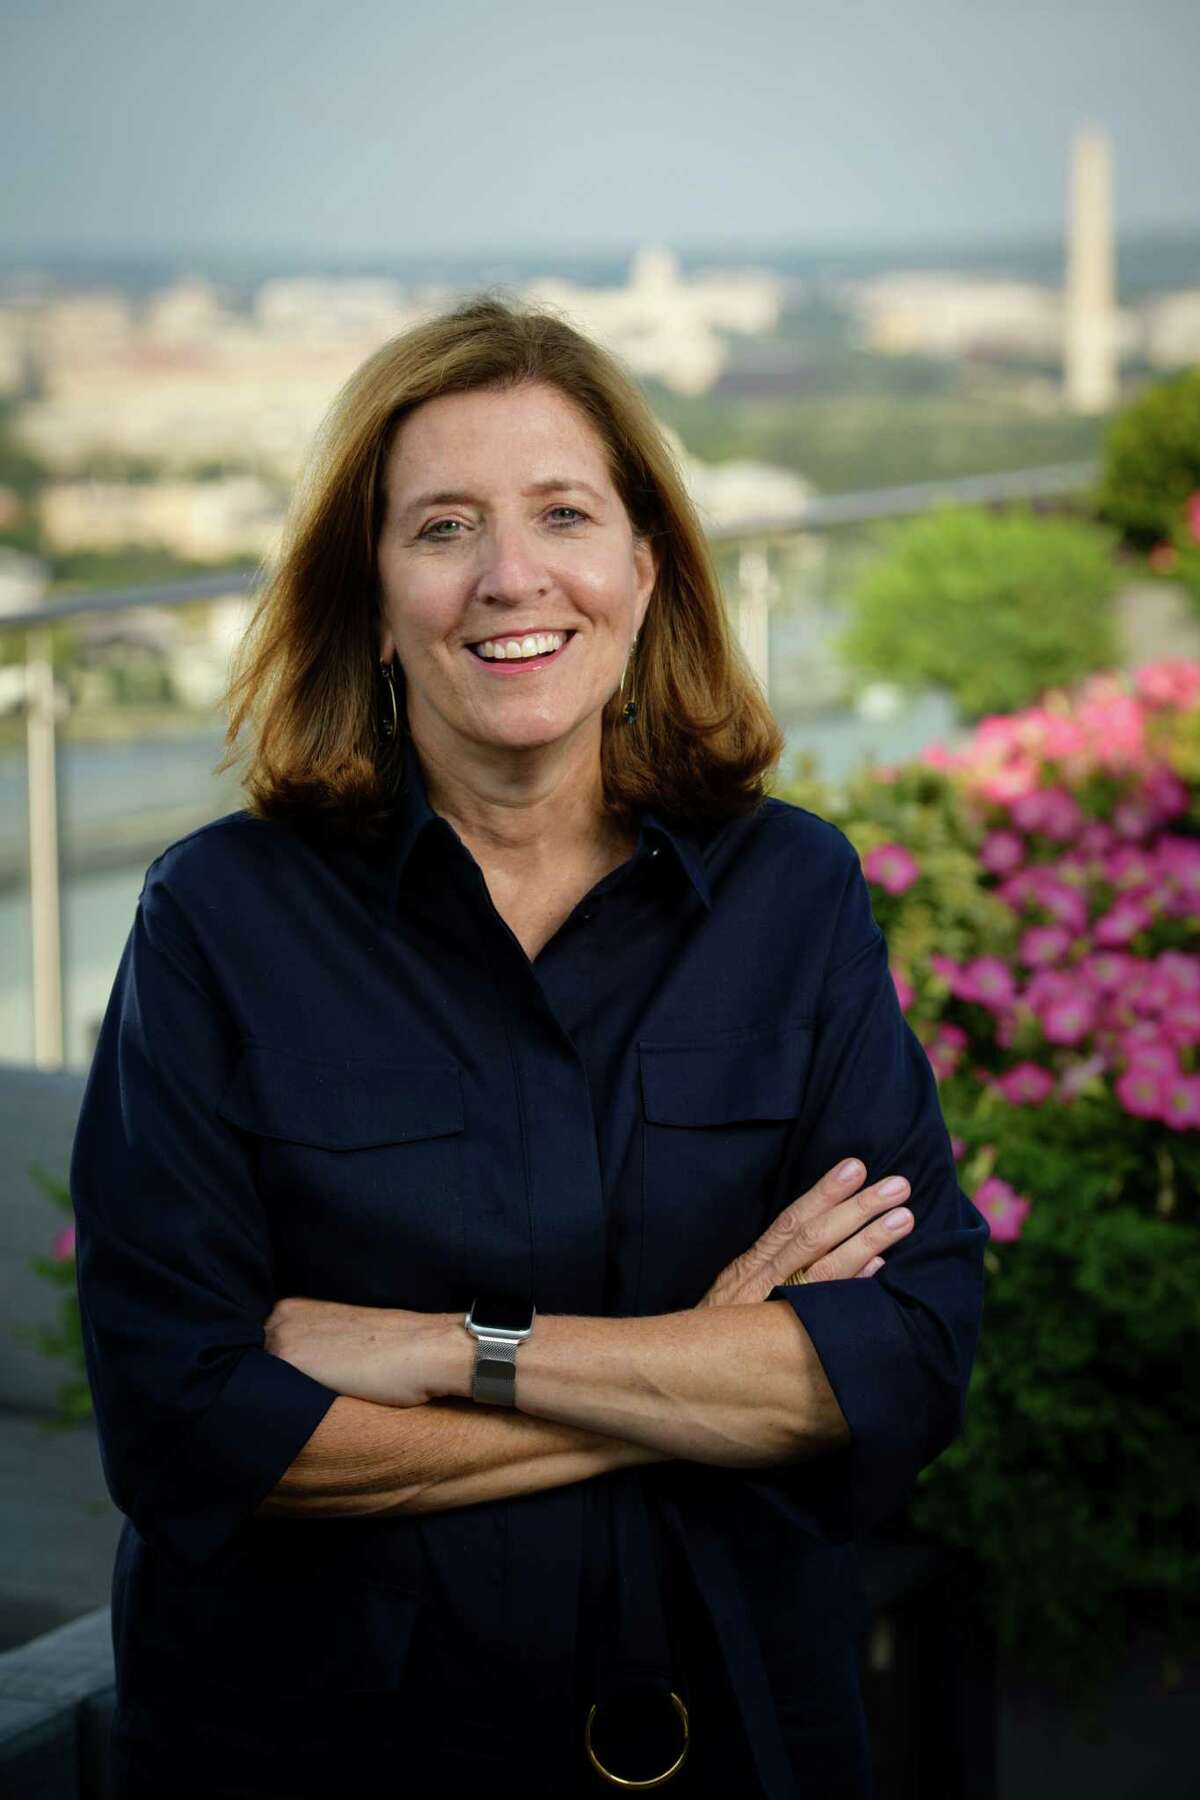 Vivian Riefberg, a Danbury native, has been named to a 25-member board that will consult the Smithsonian Institution on its new Smithsonian American Women's History Museum. She is a director emeritus with McKinsey & Company and the David C. Walentas Jefferson Scholars Chair at the Darden School of Business at the University of Virginia.